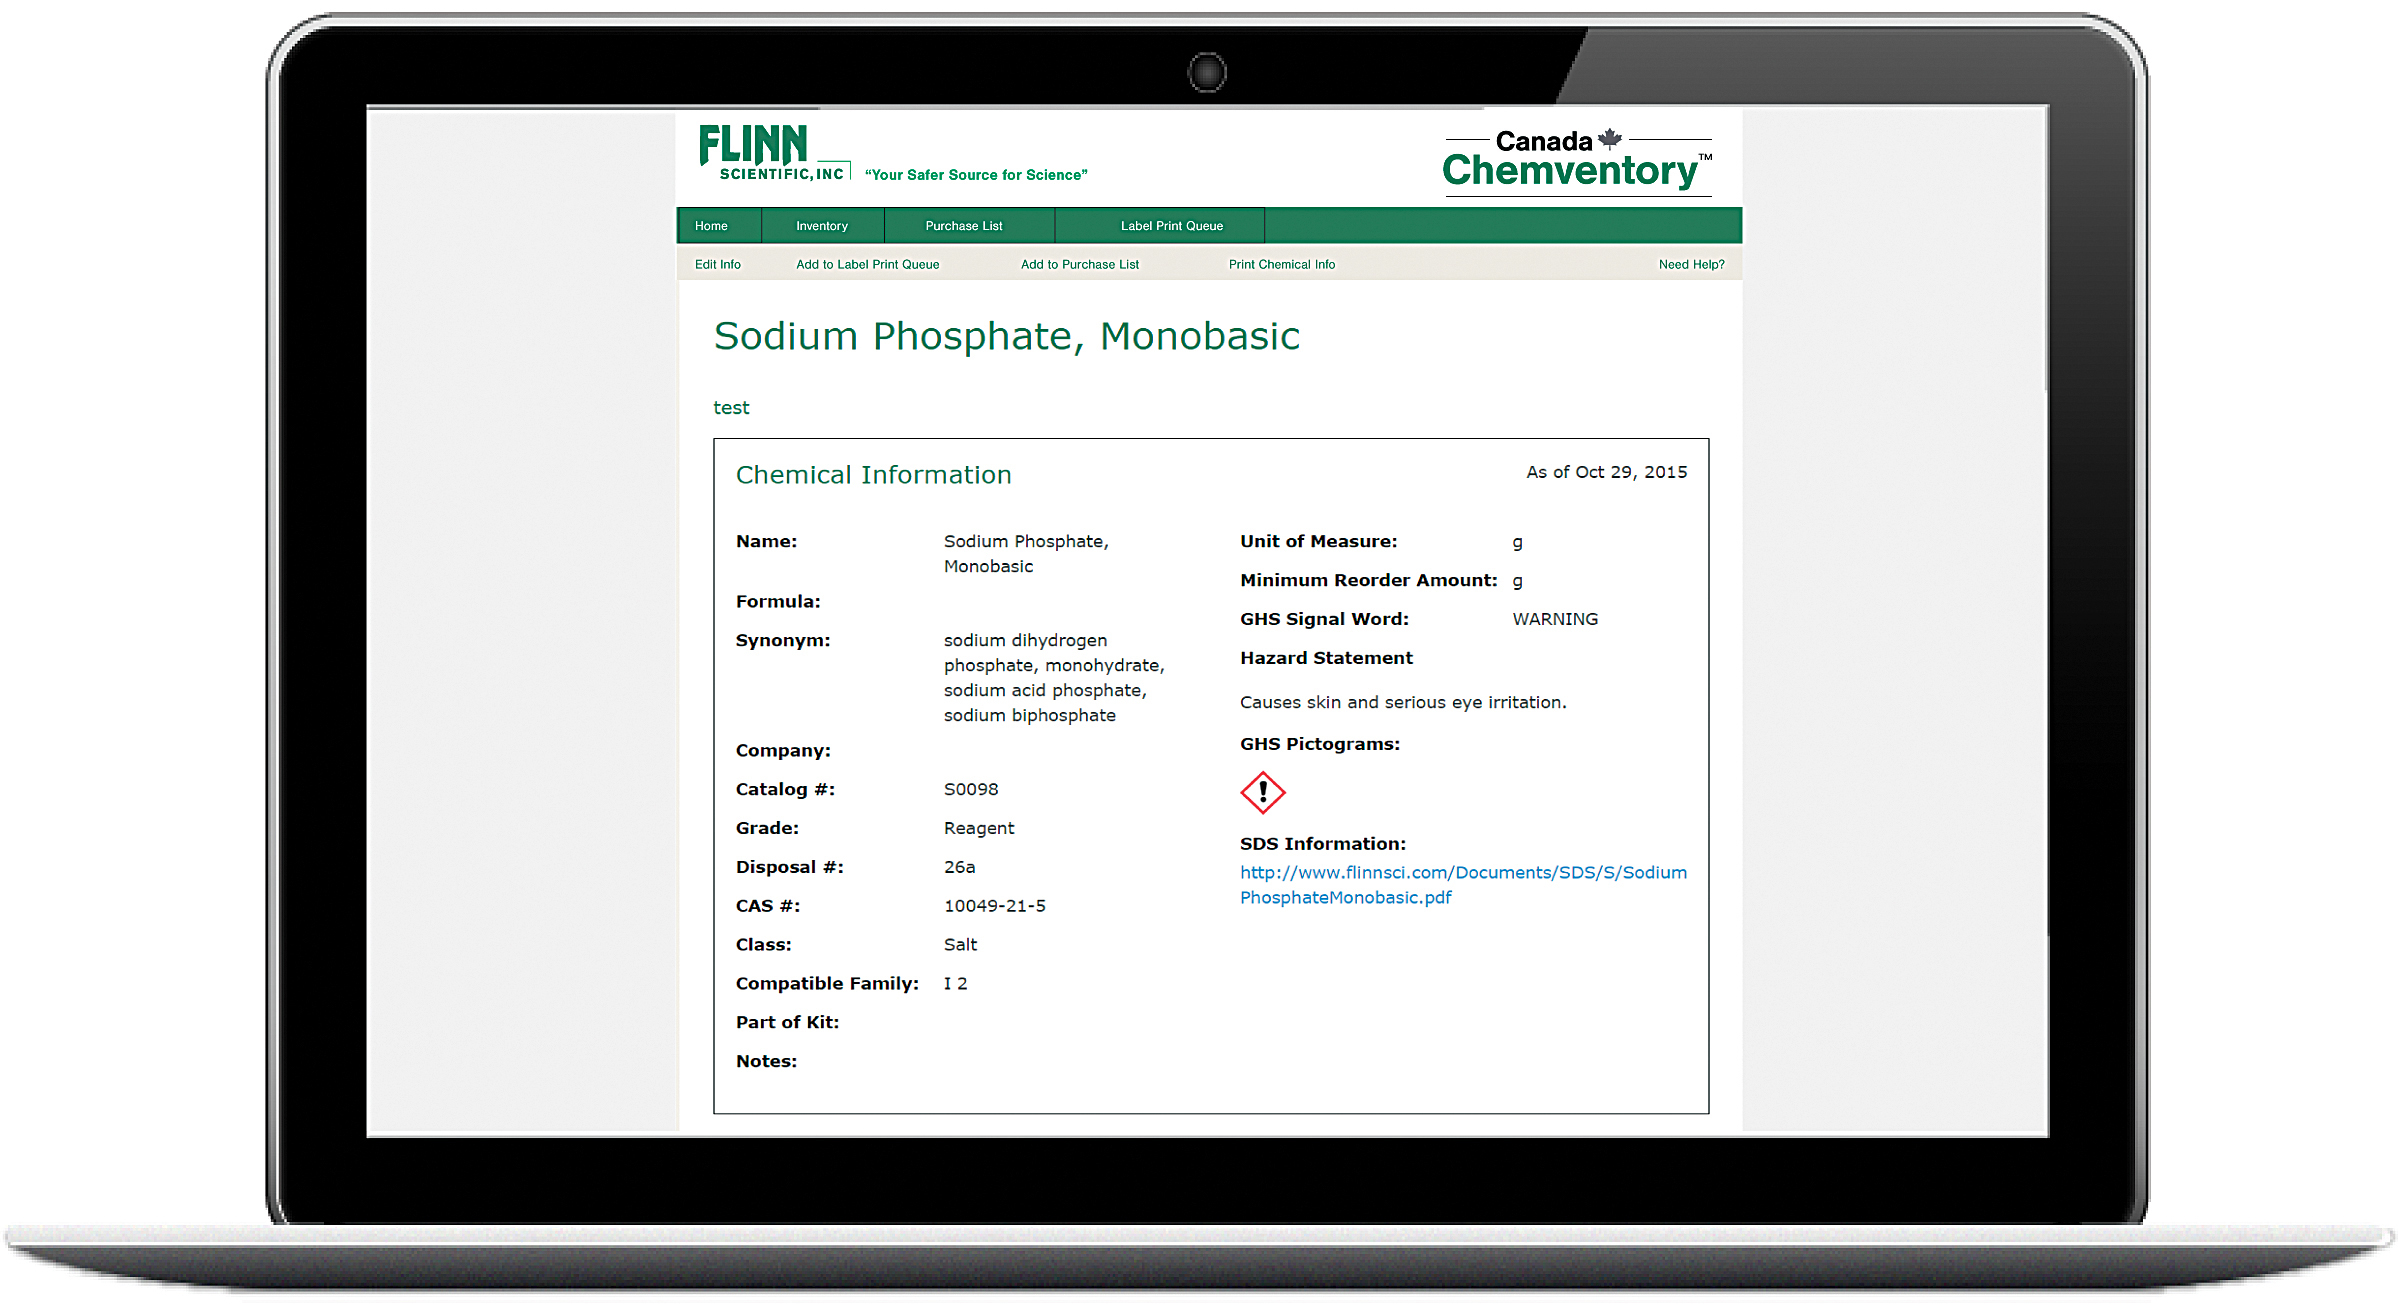 Flinn Canada Online Chemventory™ Chemical Inventory Management System